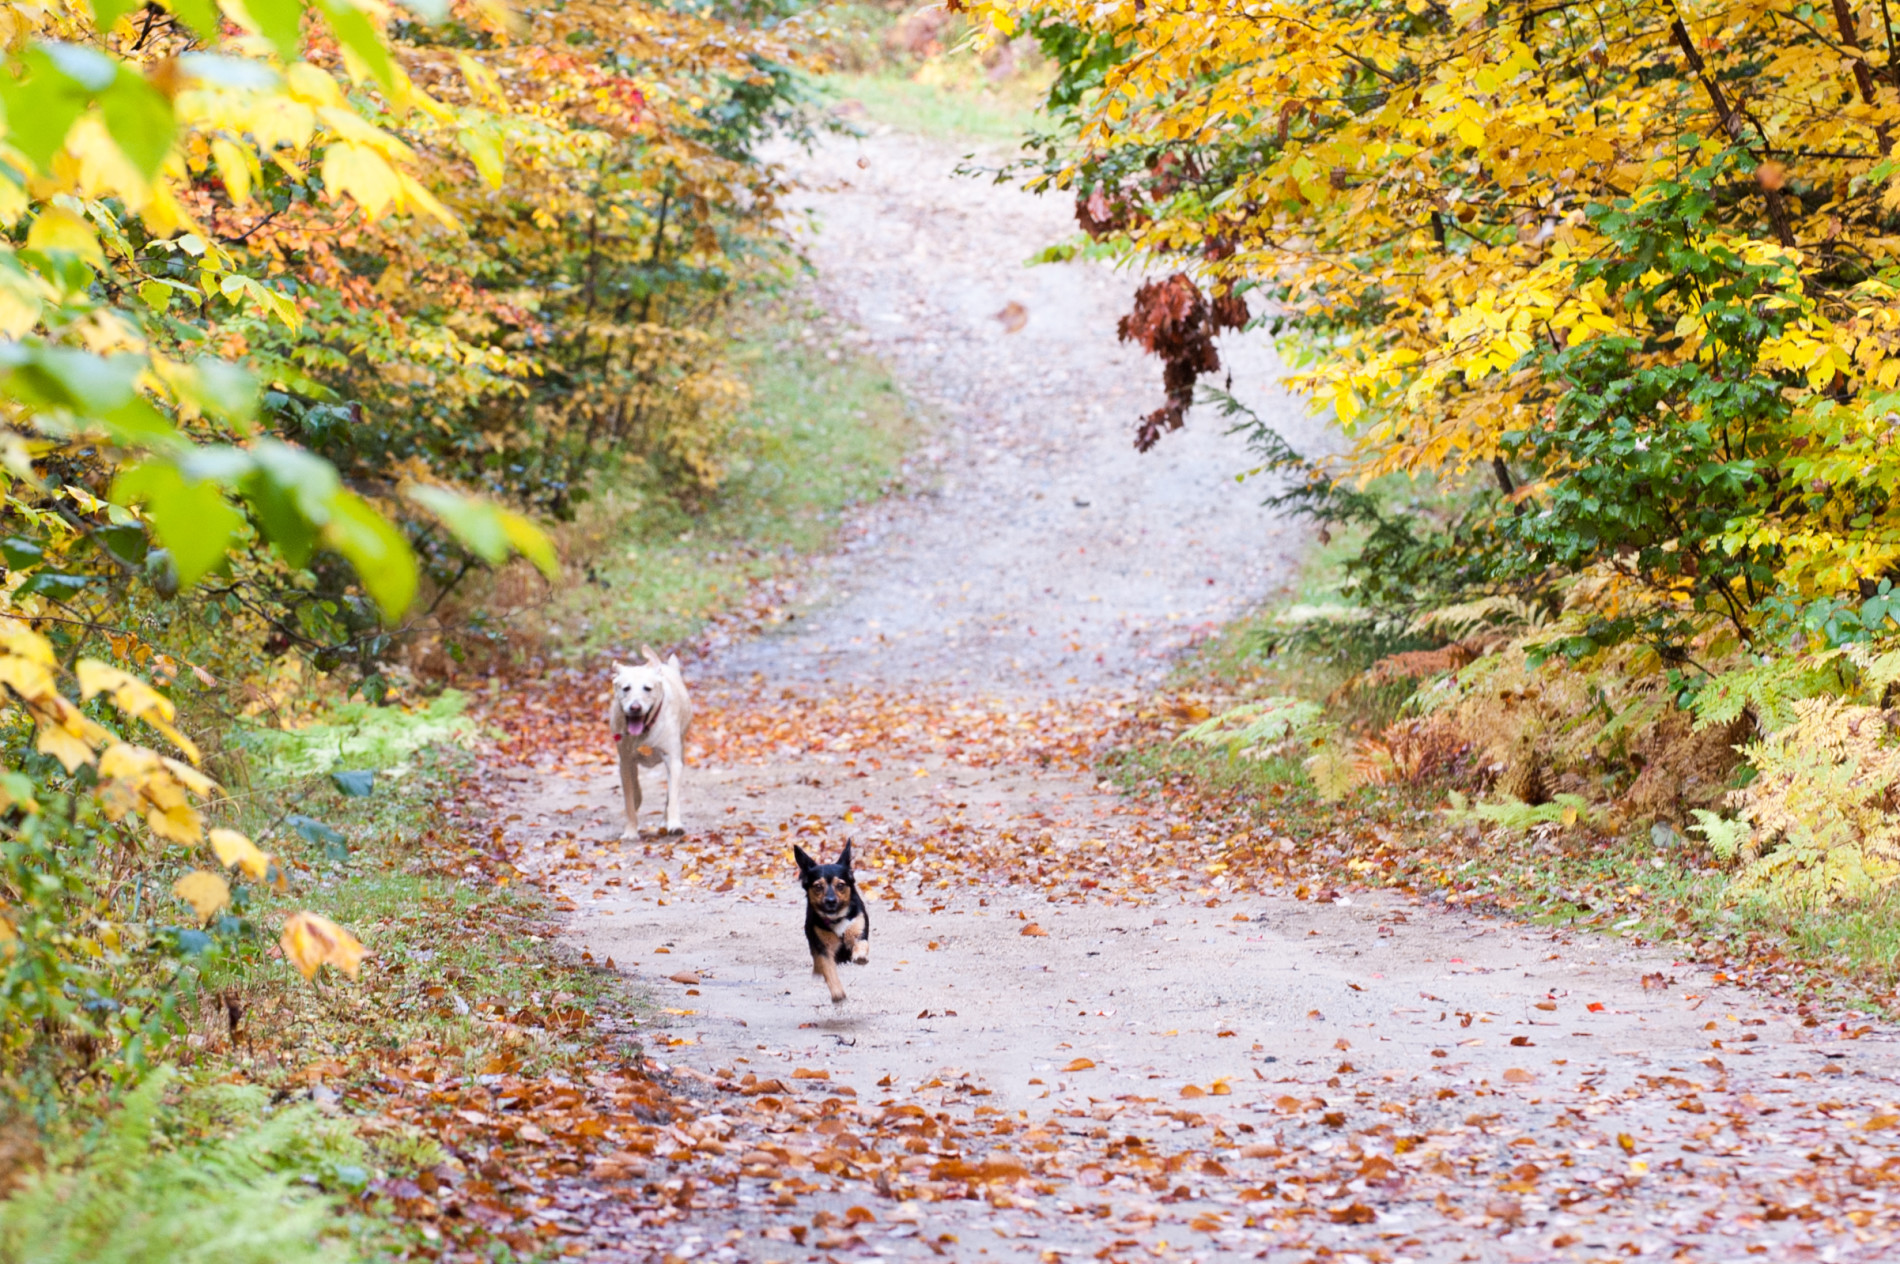 Carol-Savage-Photography---Fall-scene-dogs-running(98)-w1900.jpg